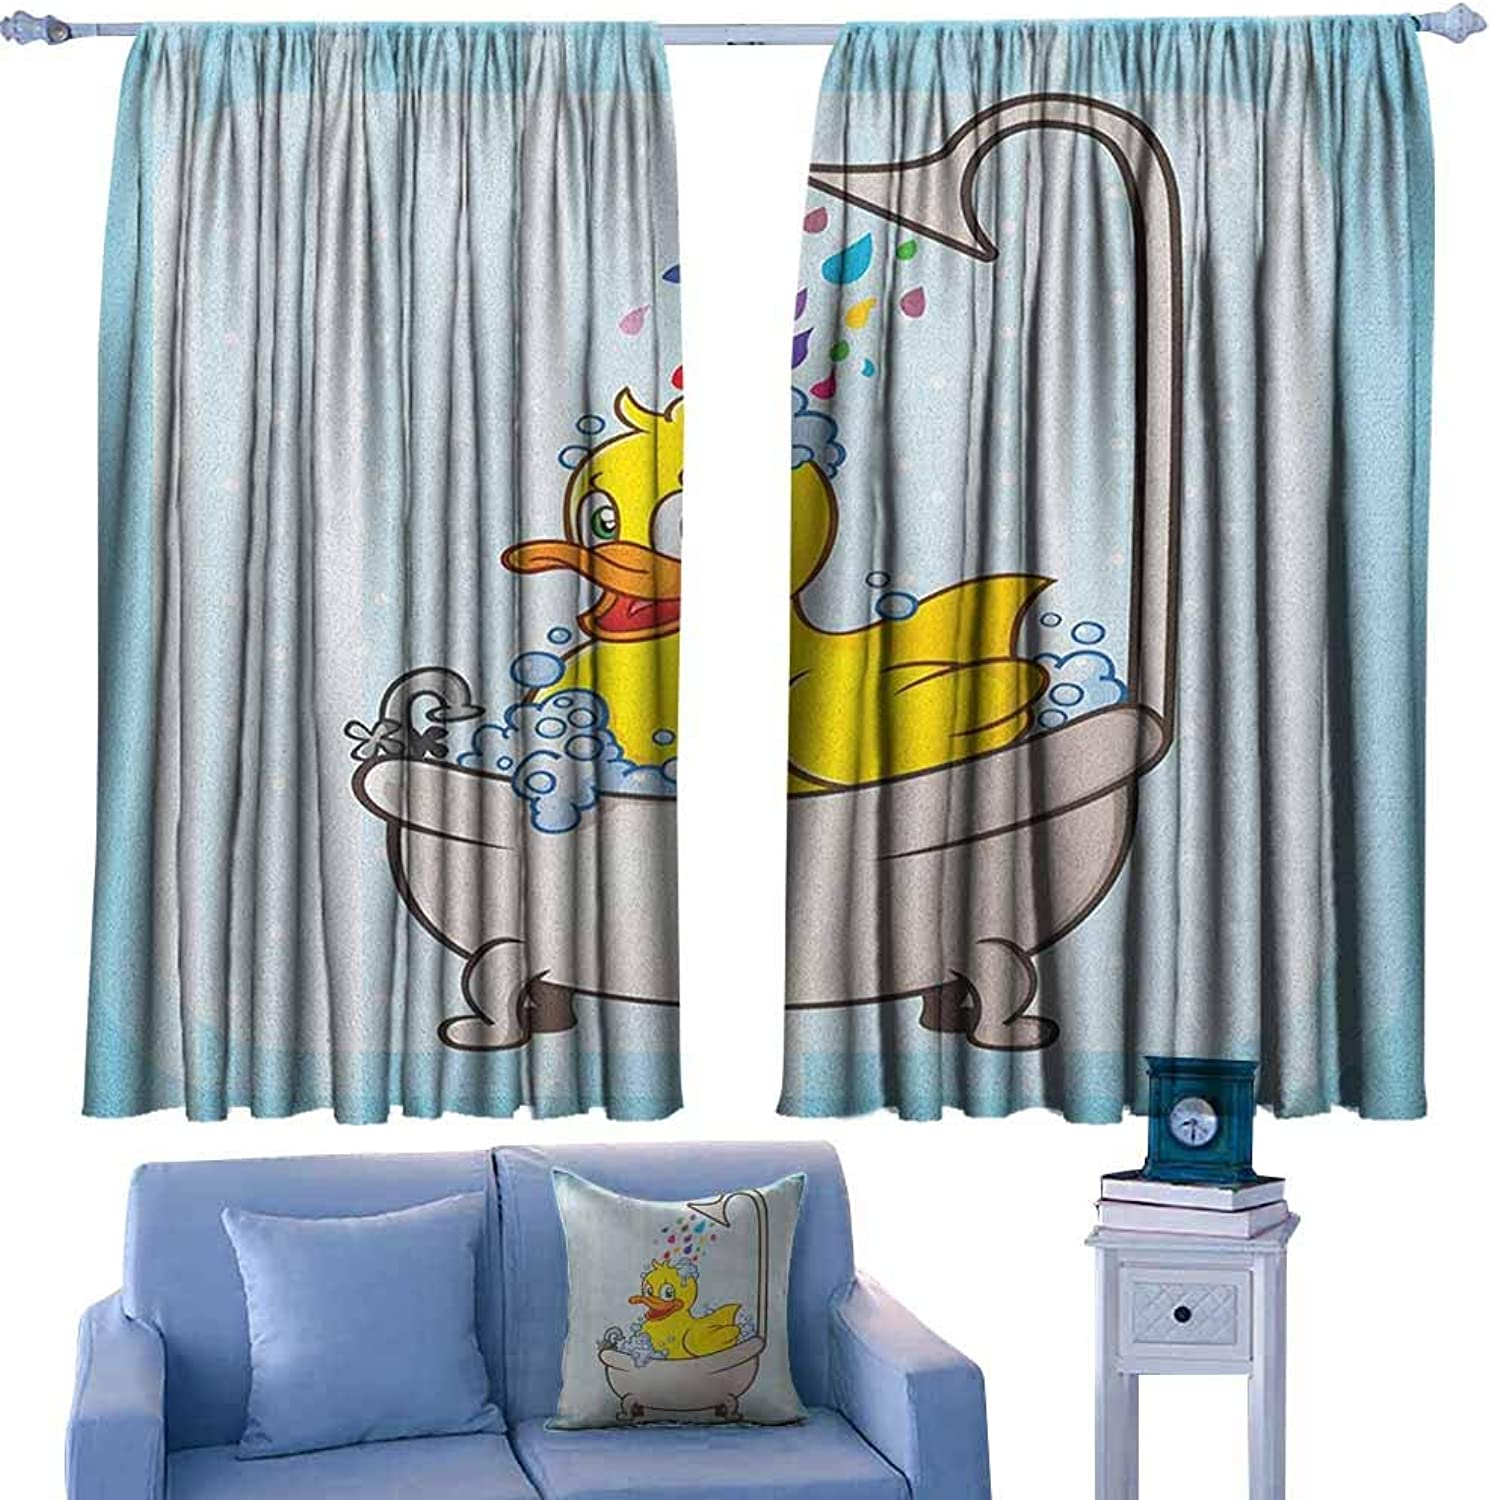 AndyTours Small Window Curtains,Duck Cartoon Character Taking a Bath colorful Drops bluee Backdrop with Dots Kids Nursery,Great for Living Rooms & Bedrooms,W55x63L Inches Multicolor